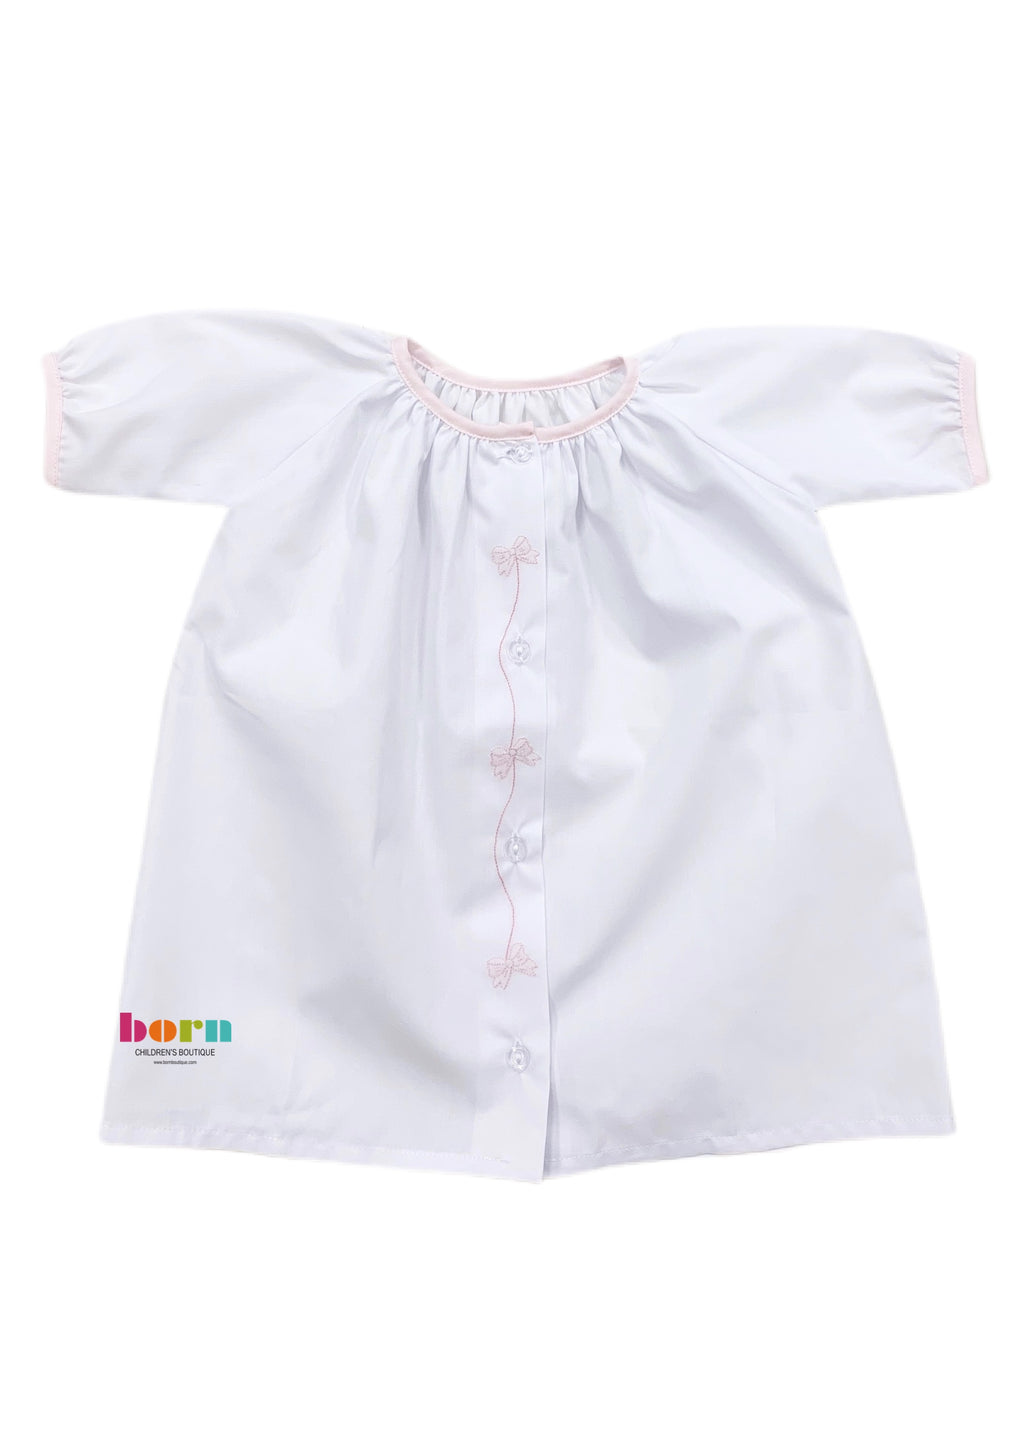 Daygown L/S White/Pink Bow String - Born Childrens Boutique